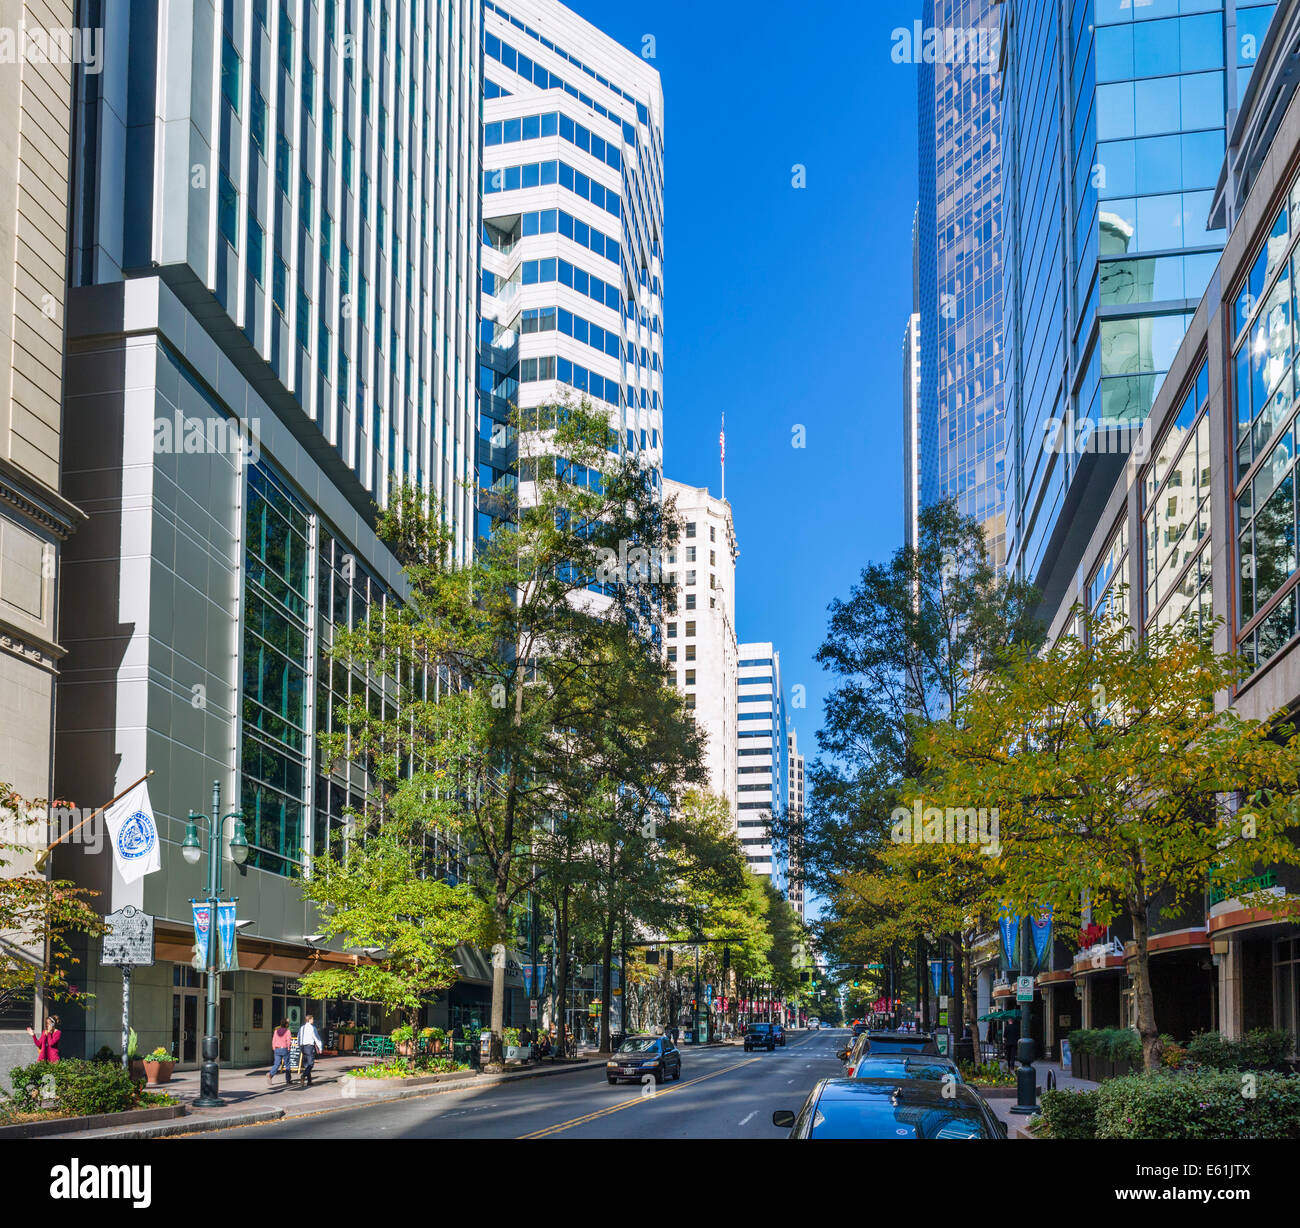 Bürogebäude in der North Tryon Street in uptown Charlotte, North Carolina, USA Stockbild